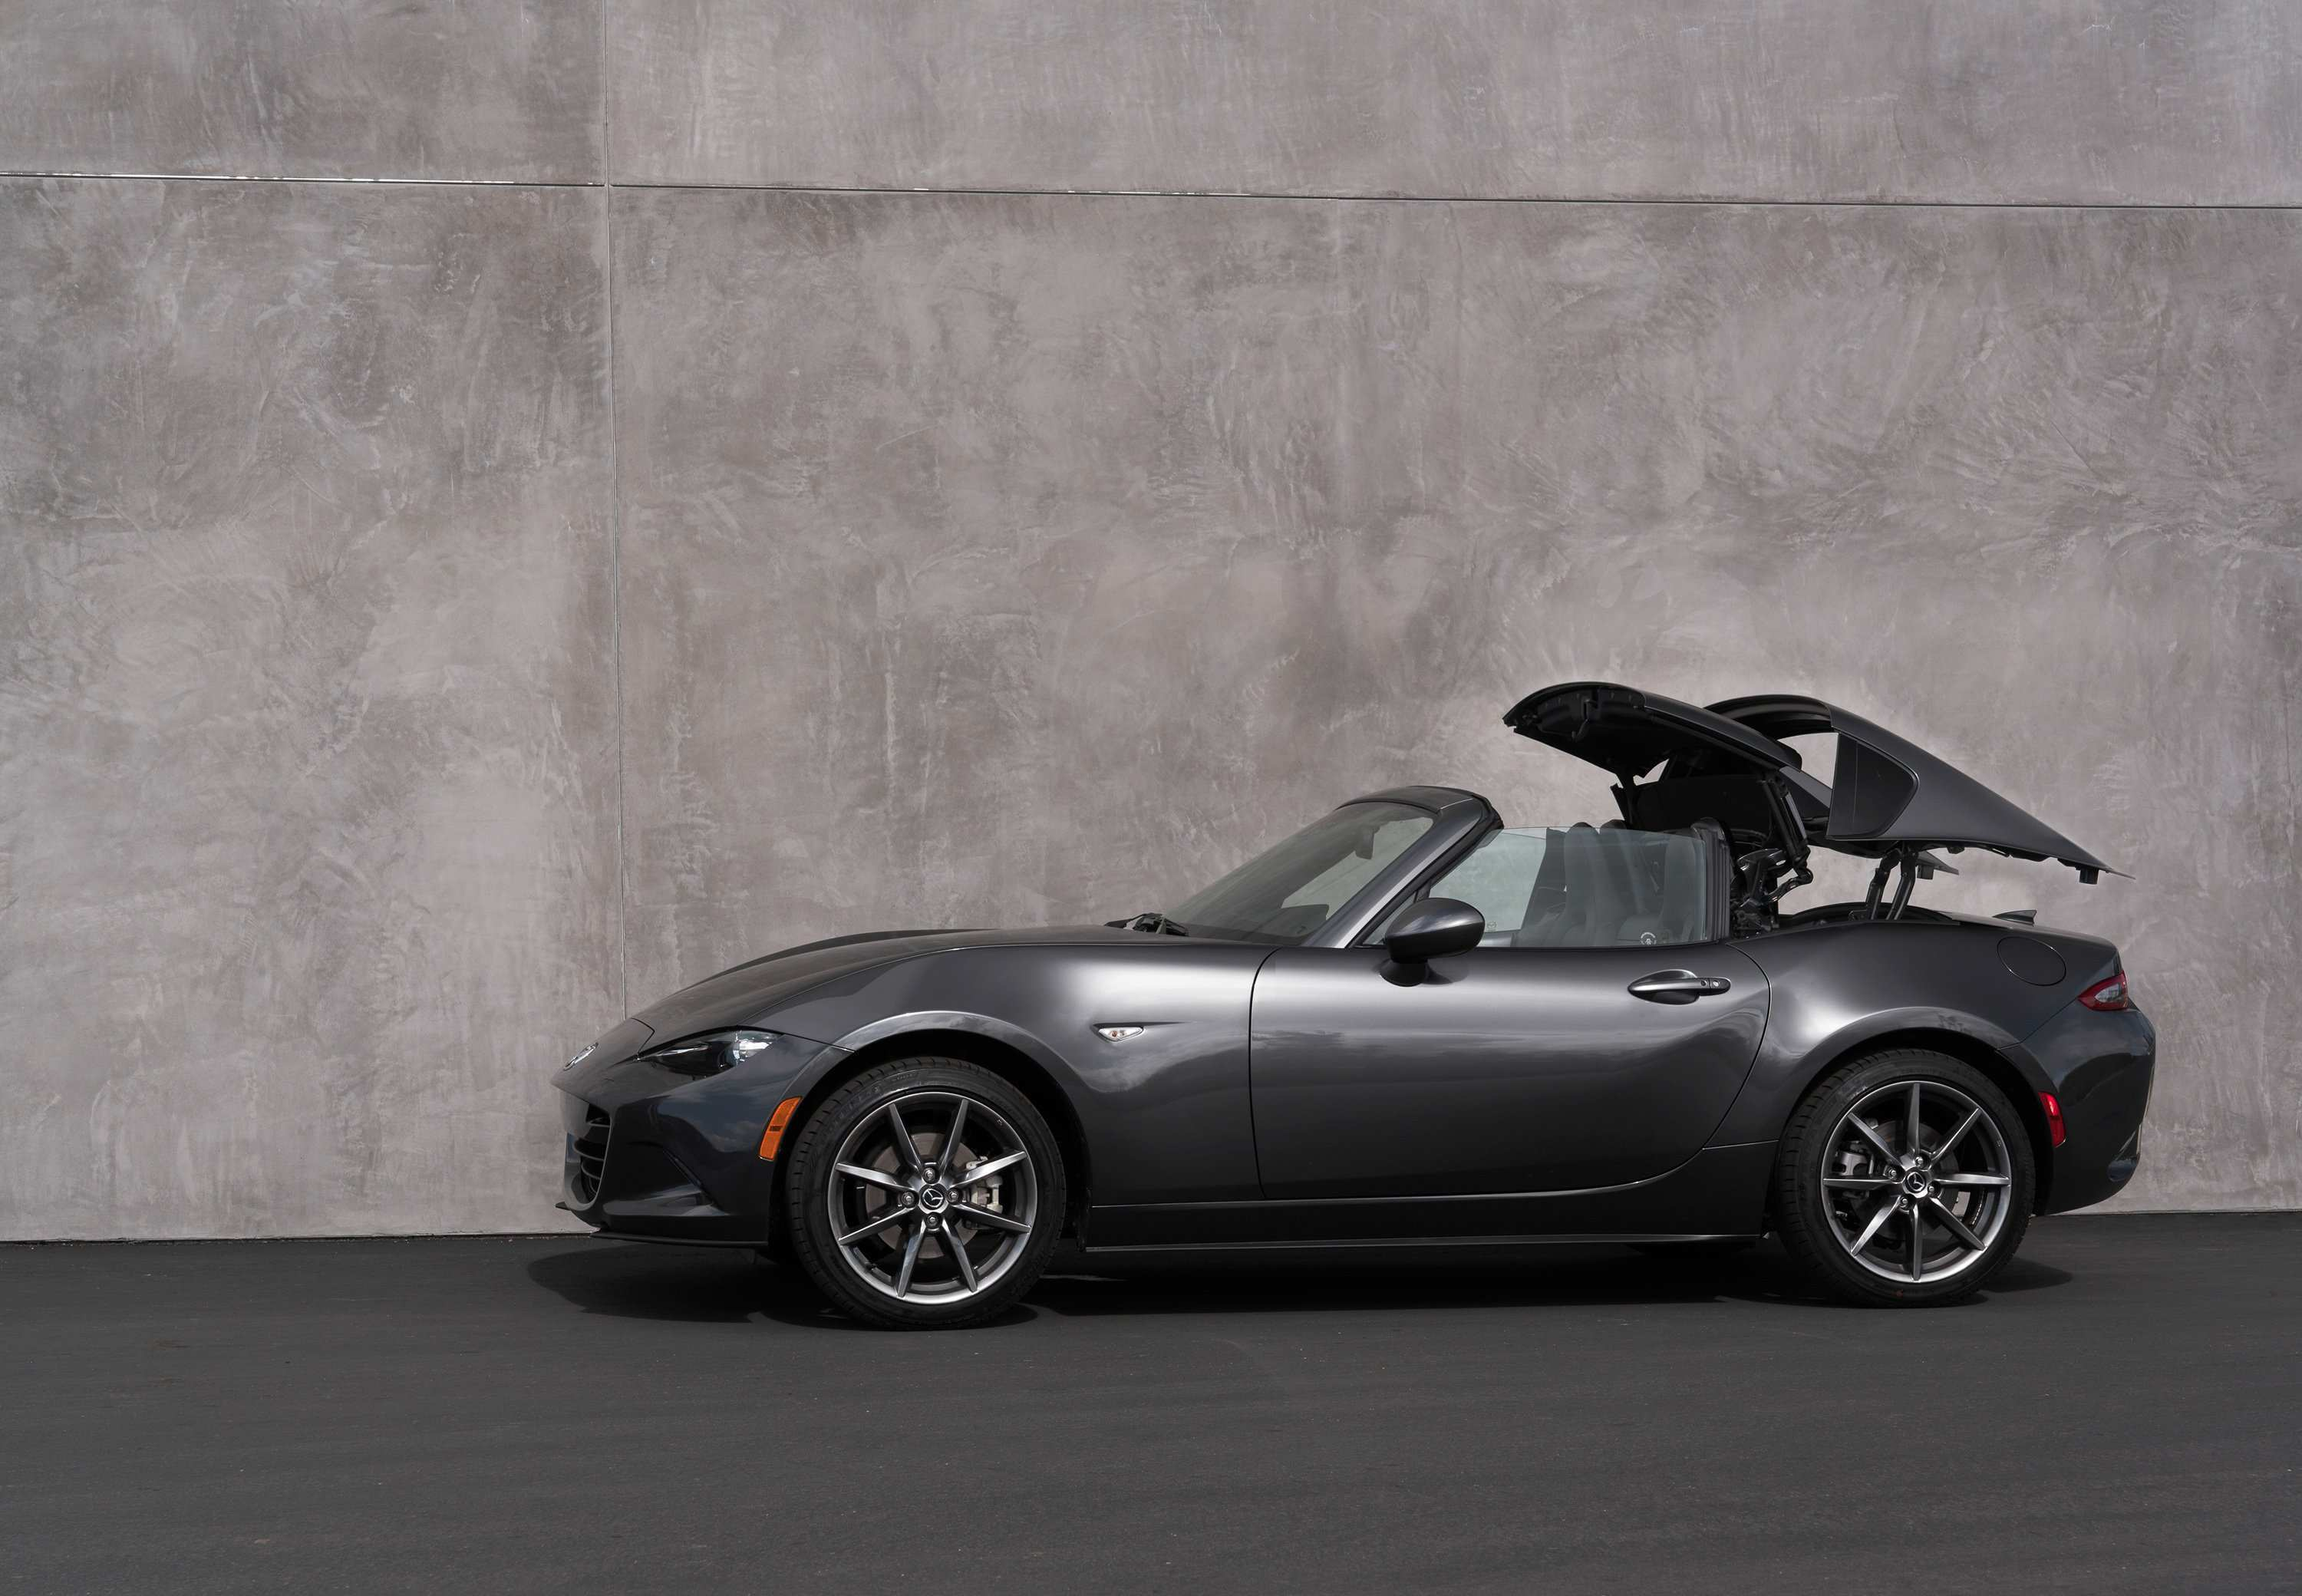 64 Concept of 2019 Mazda Mx 5 Gt S Prices with 2019 Mazda Mx 5 Gt S